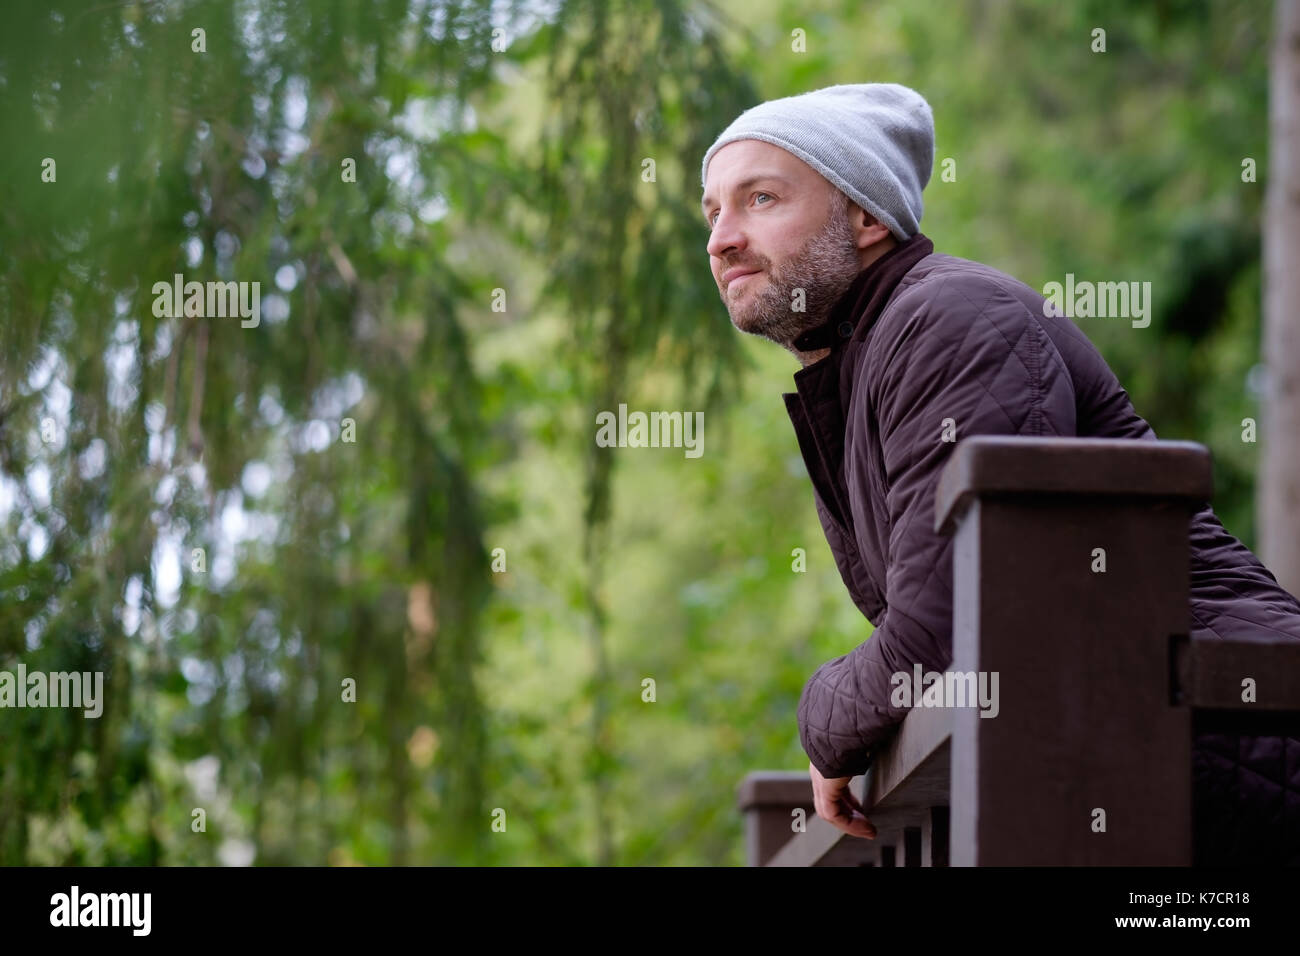 handsome mature man smiling in warm hat and jacket looking aside - Stock Image